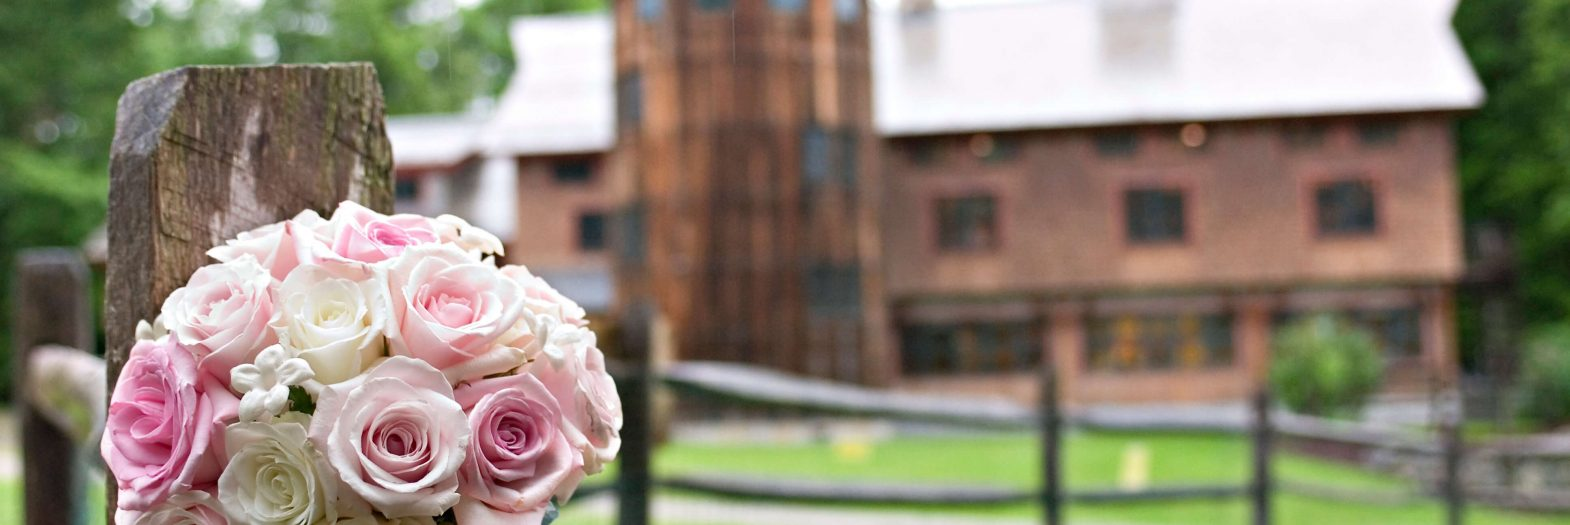 a bridal bouquet of pink and white roses, rests on a post and beam fence